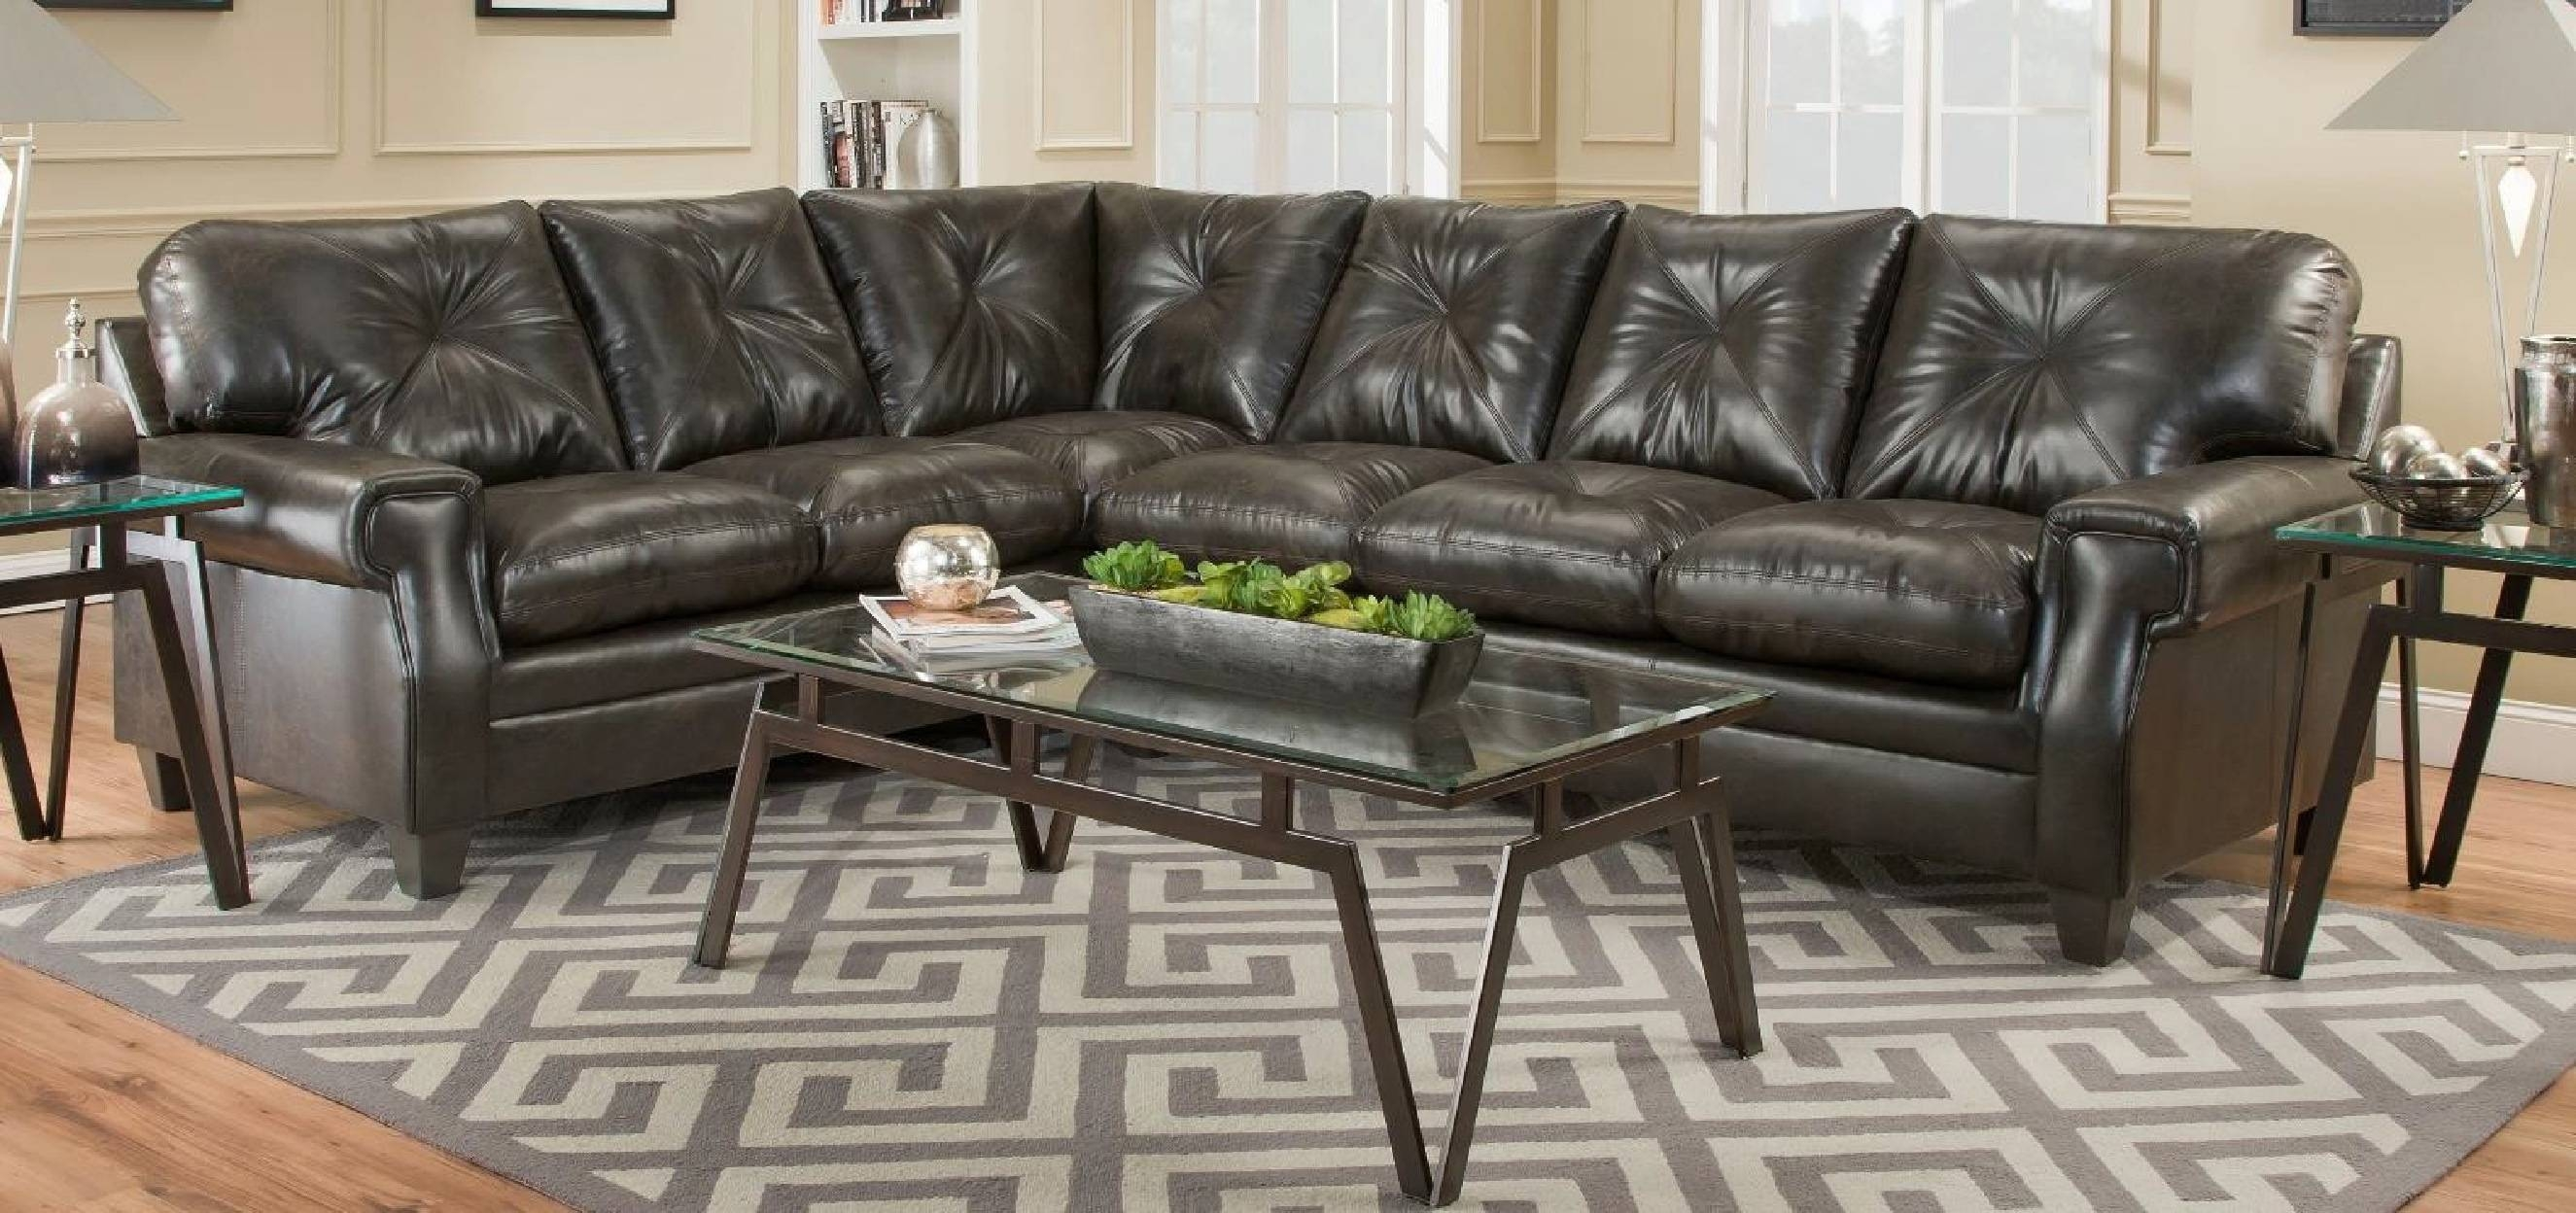 Furniture: Simmons Sectional | Leather Couch Big Lots | Simmons for Big Lots Simmons Furniture (Image 10 of 15)